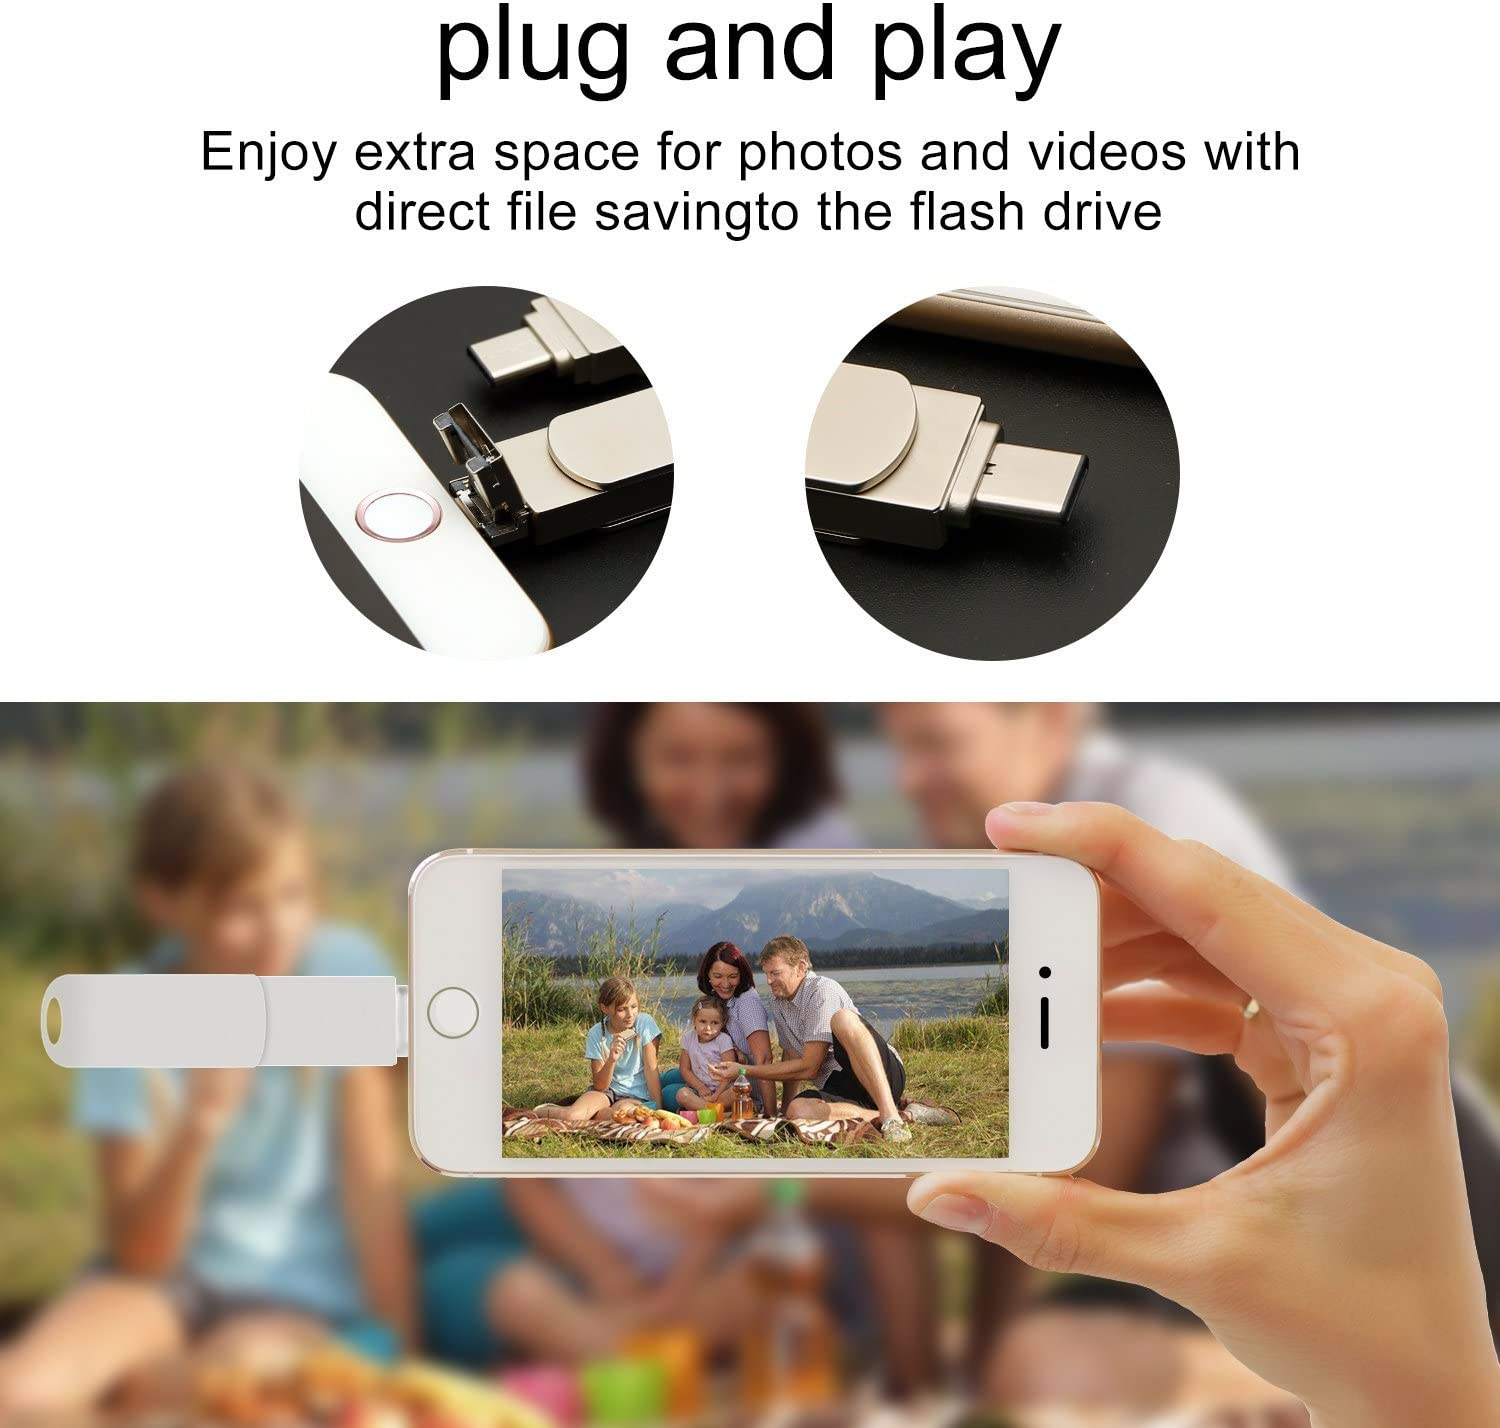 USB Memory Stick with USB 3.1 Type C Adapter Silver Metal 10 PCS 32GB USB 3.0 Flash Drives for iPhone iOS iPad Macbook A Plus